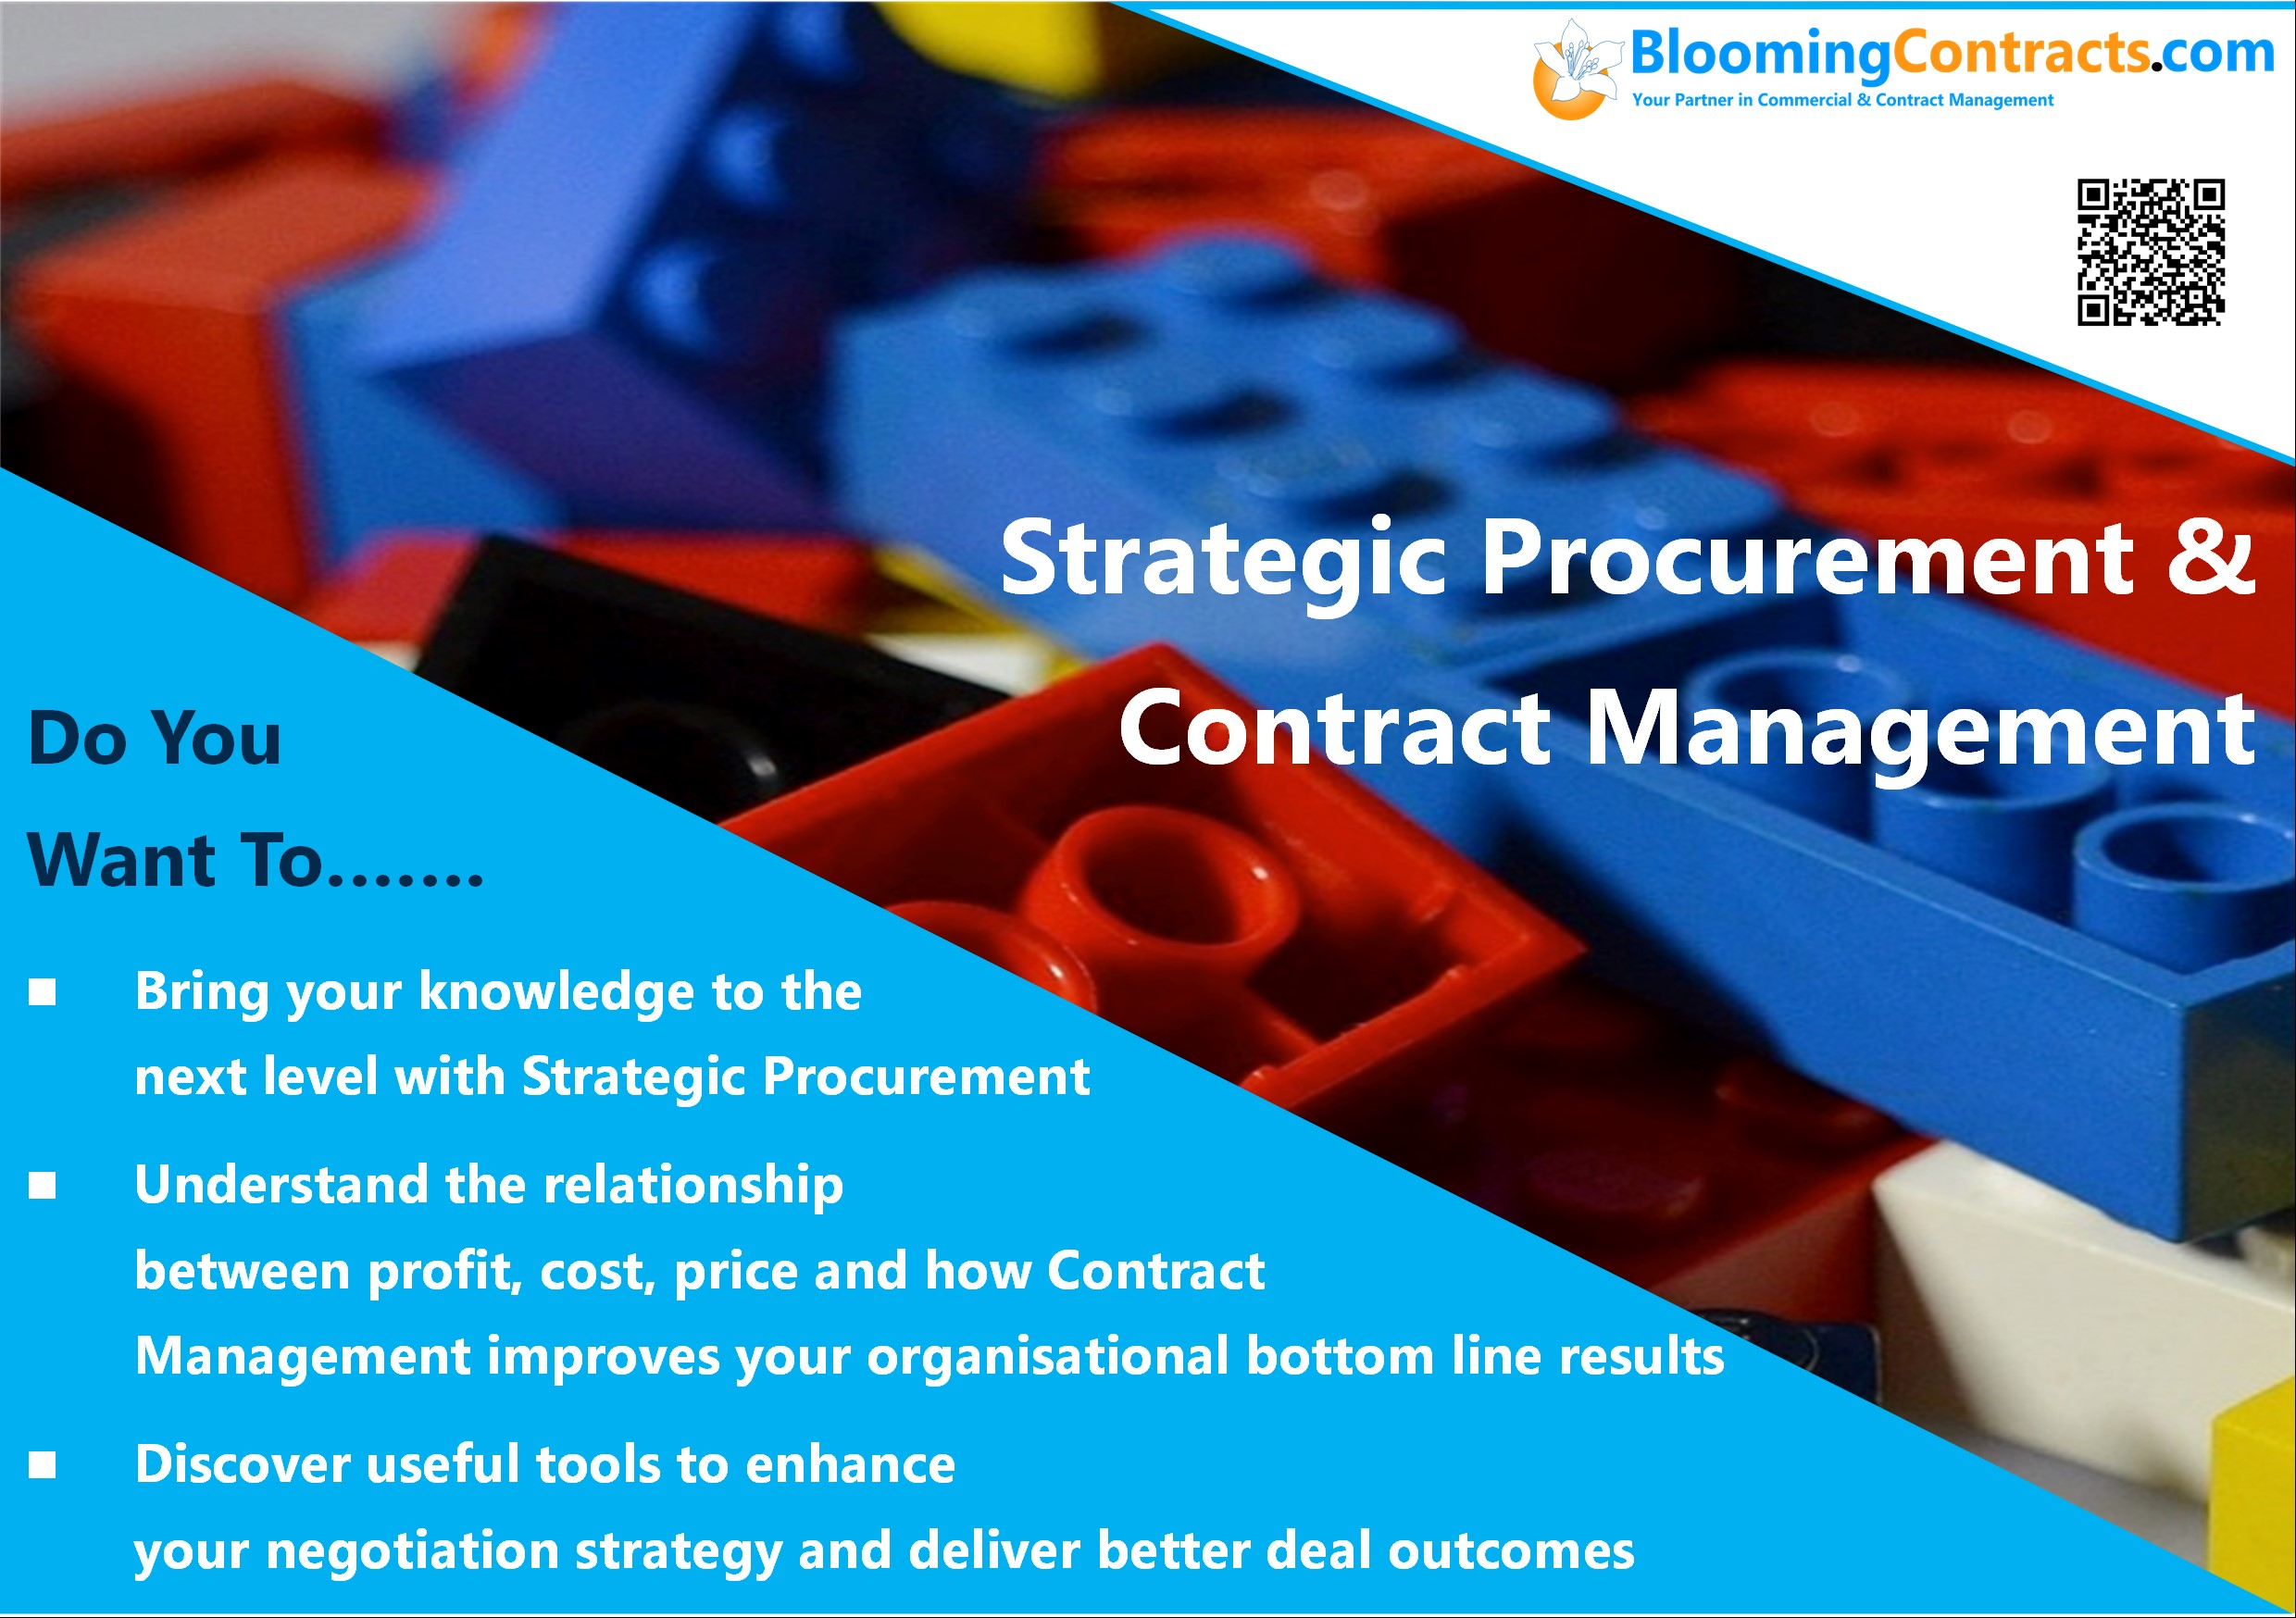 Our Introduction Course to Strategic Procurement & Contract ...